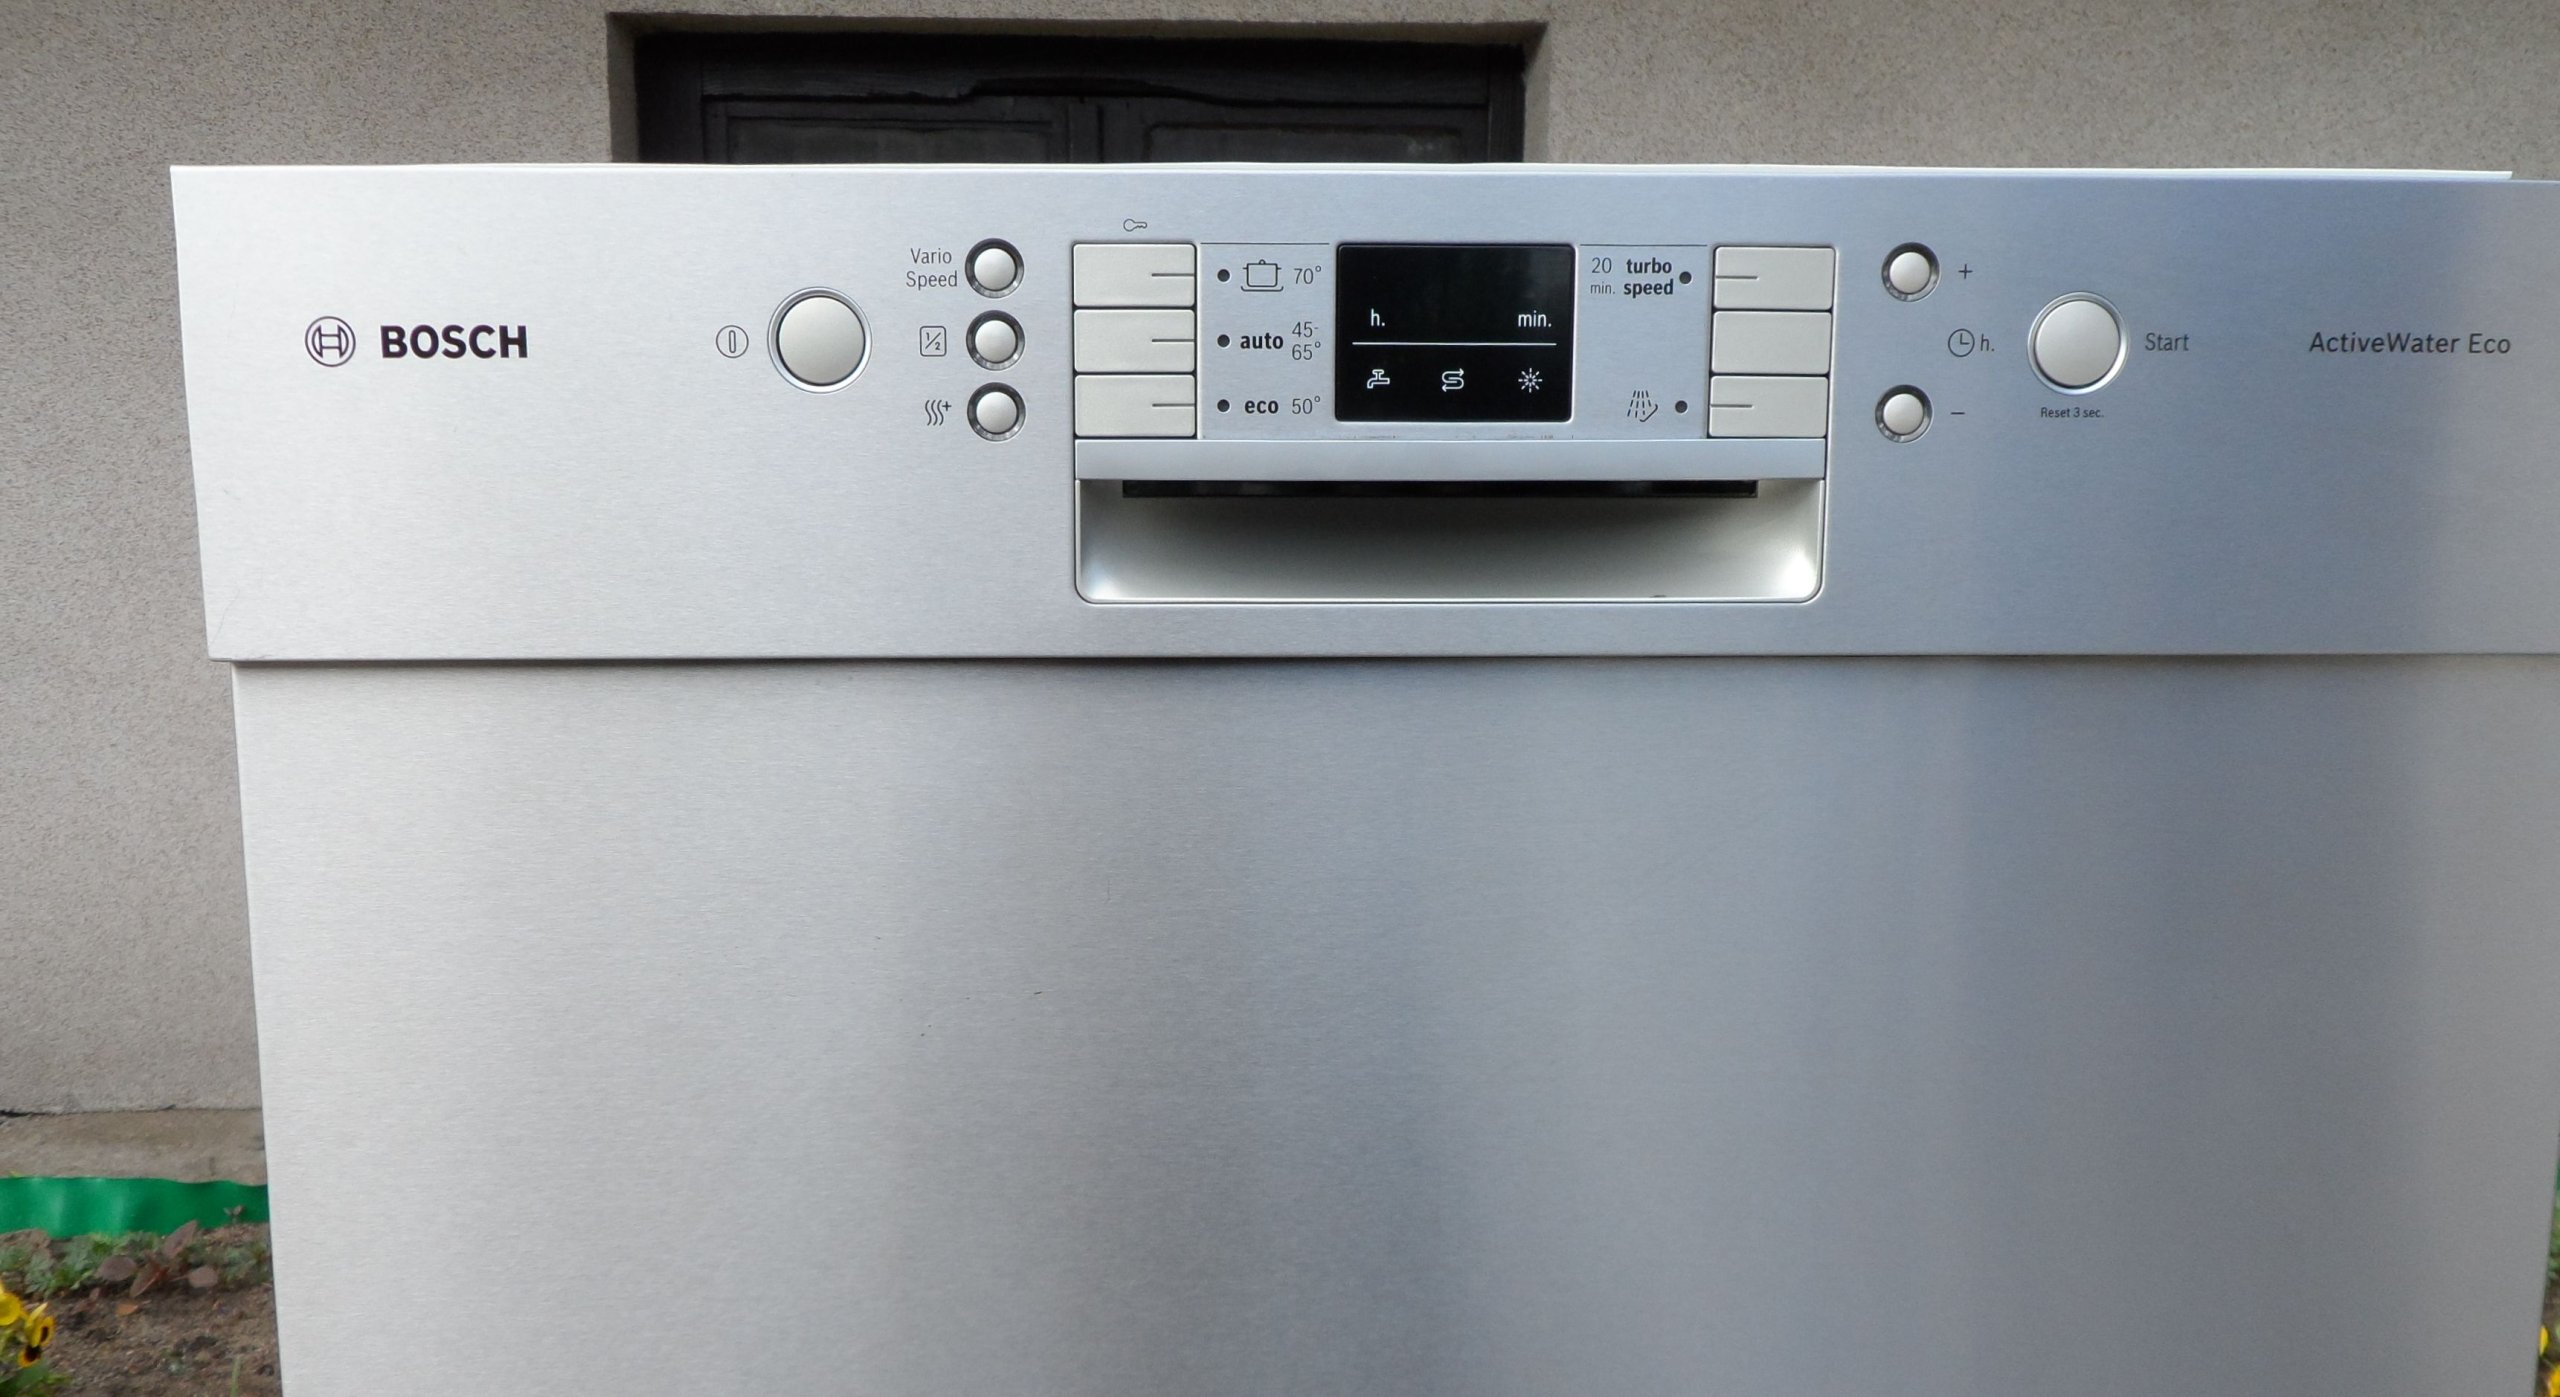 Bosch Activewater Eco Panel Front Inox A 7325924213